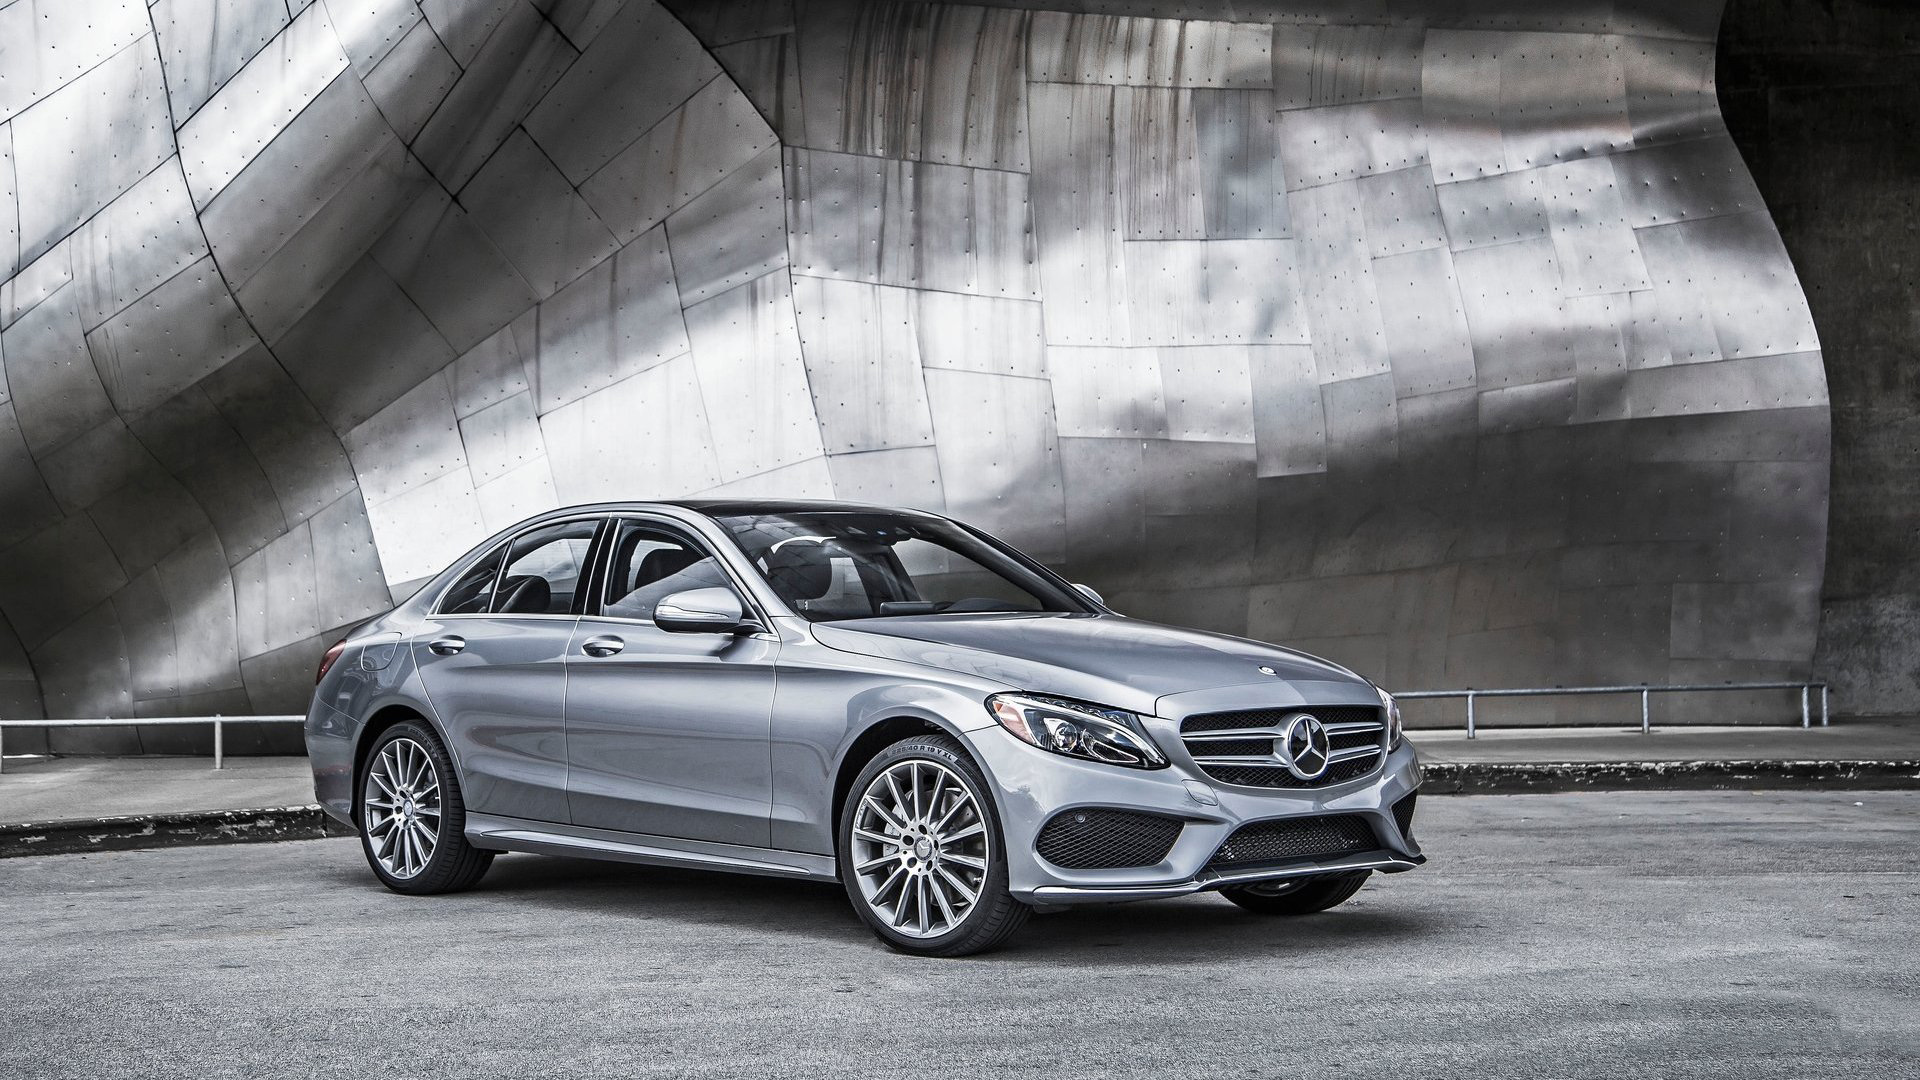 Mercedes benz c class 2015 wallpapers for Mercedes benz c classes